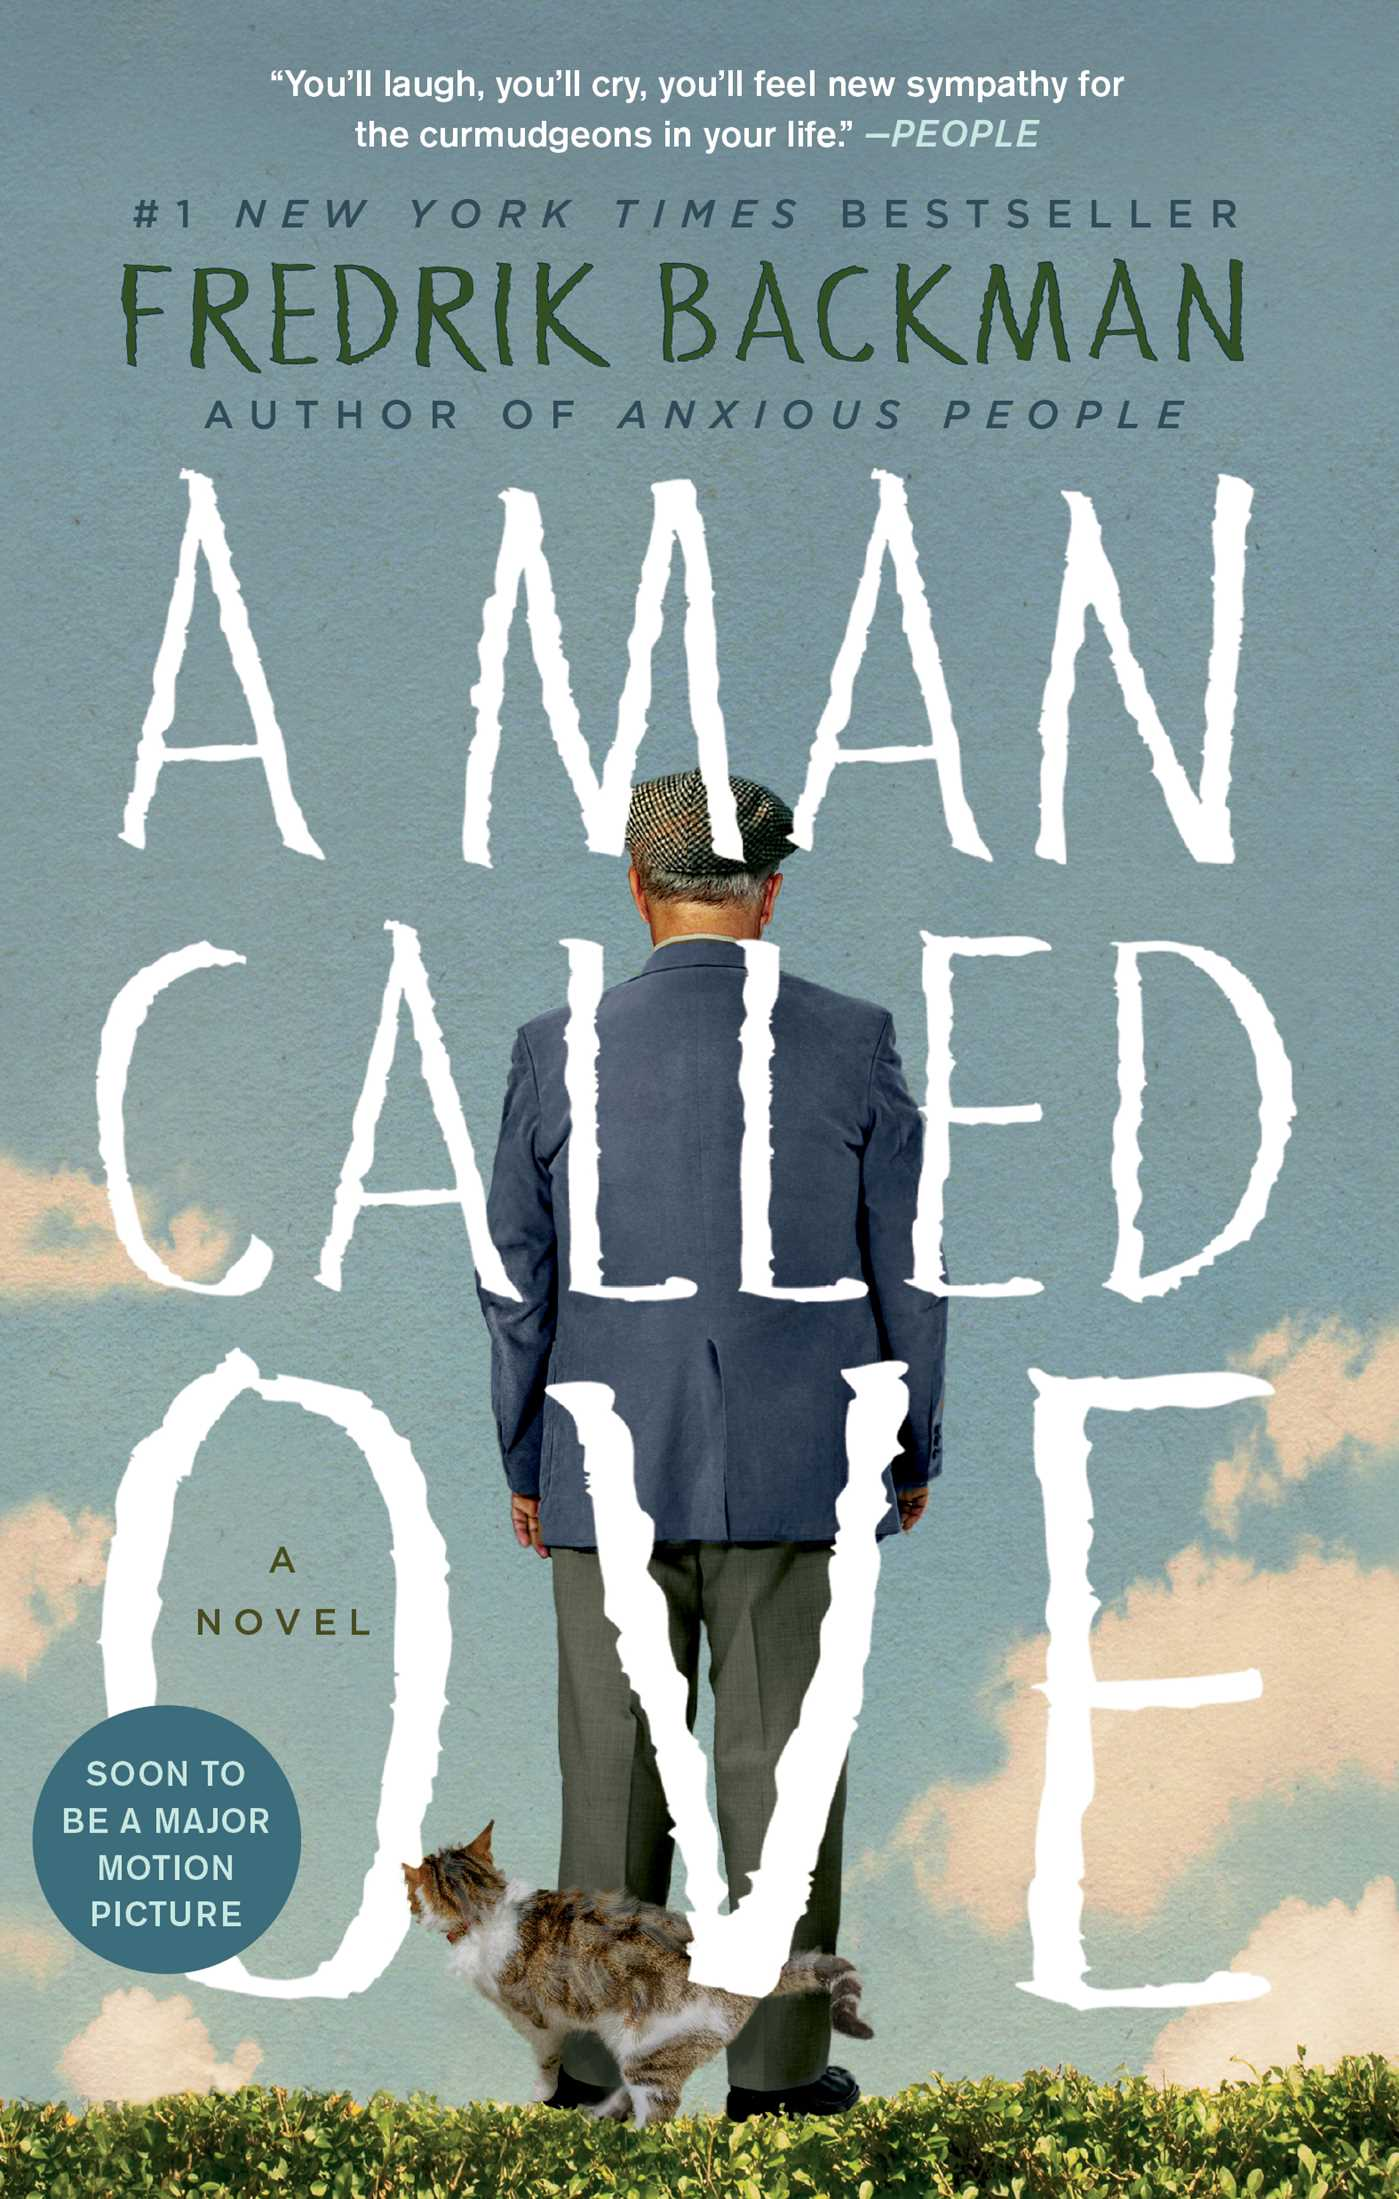 A man called ove 9781476738031 hr